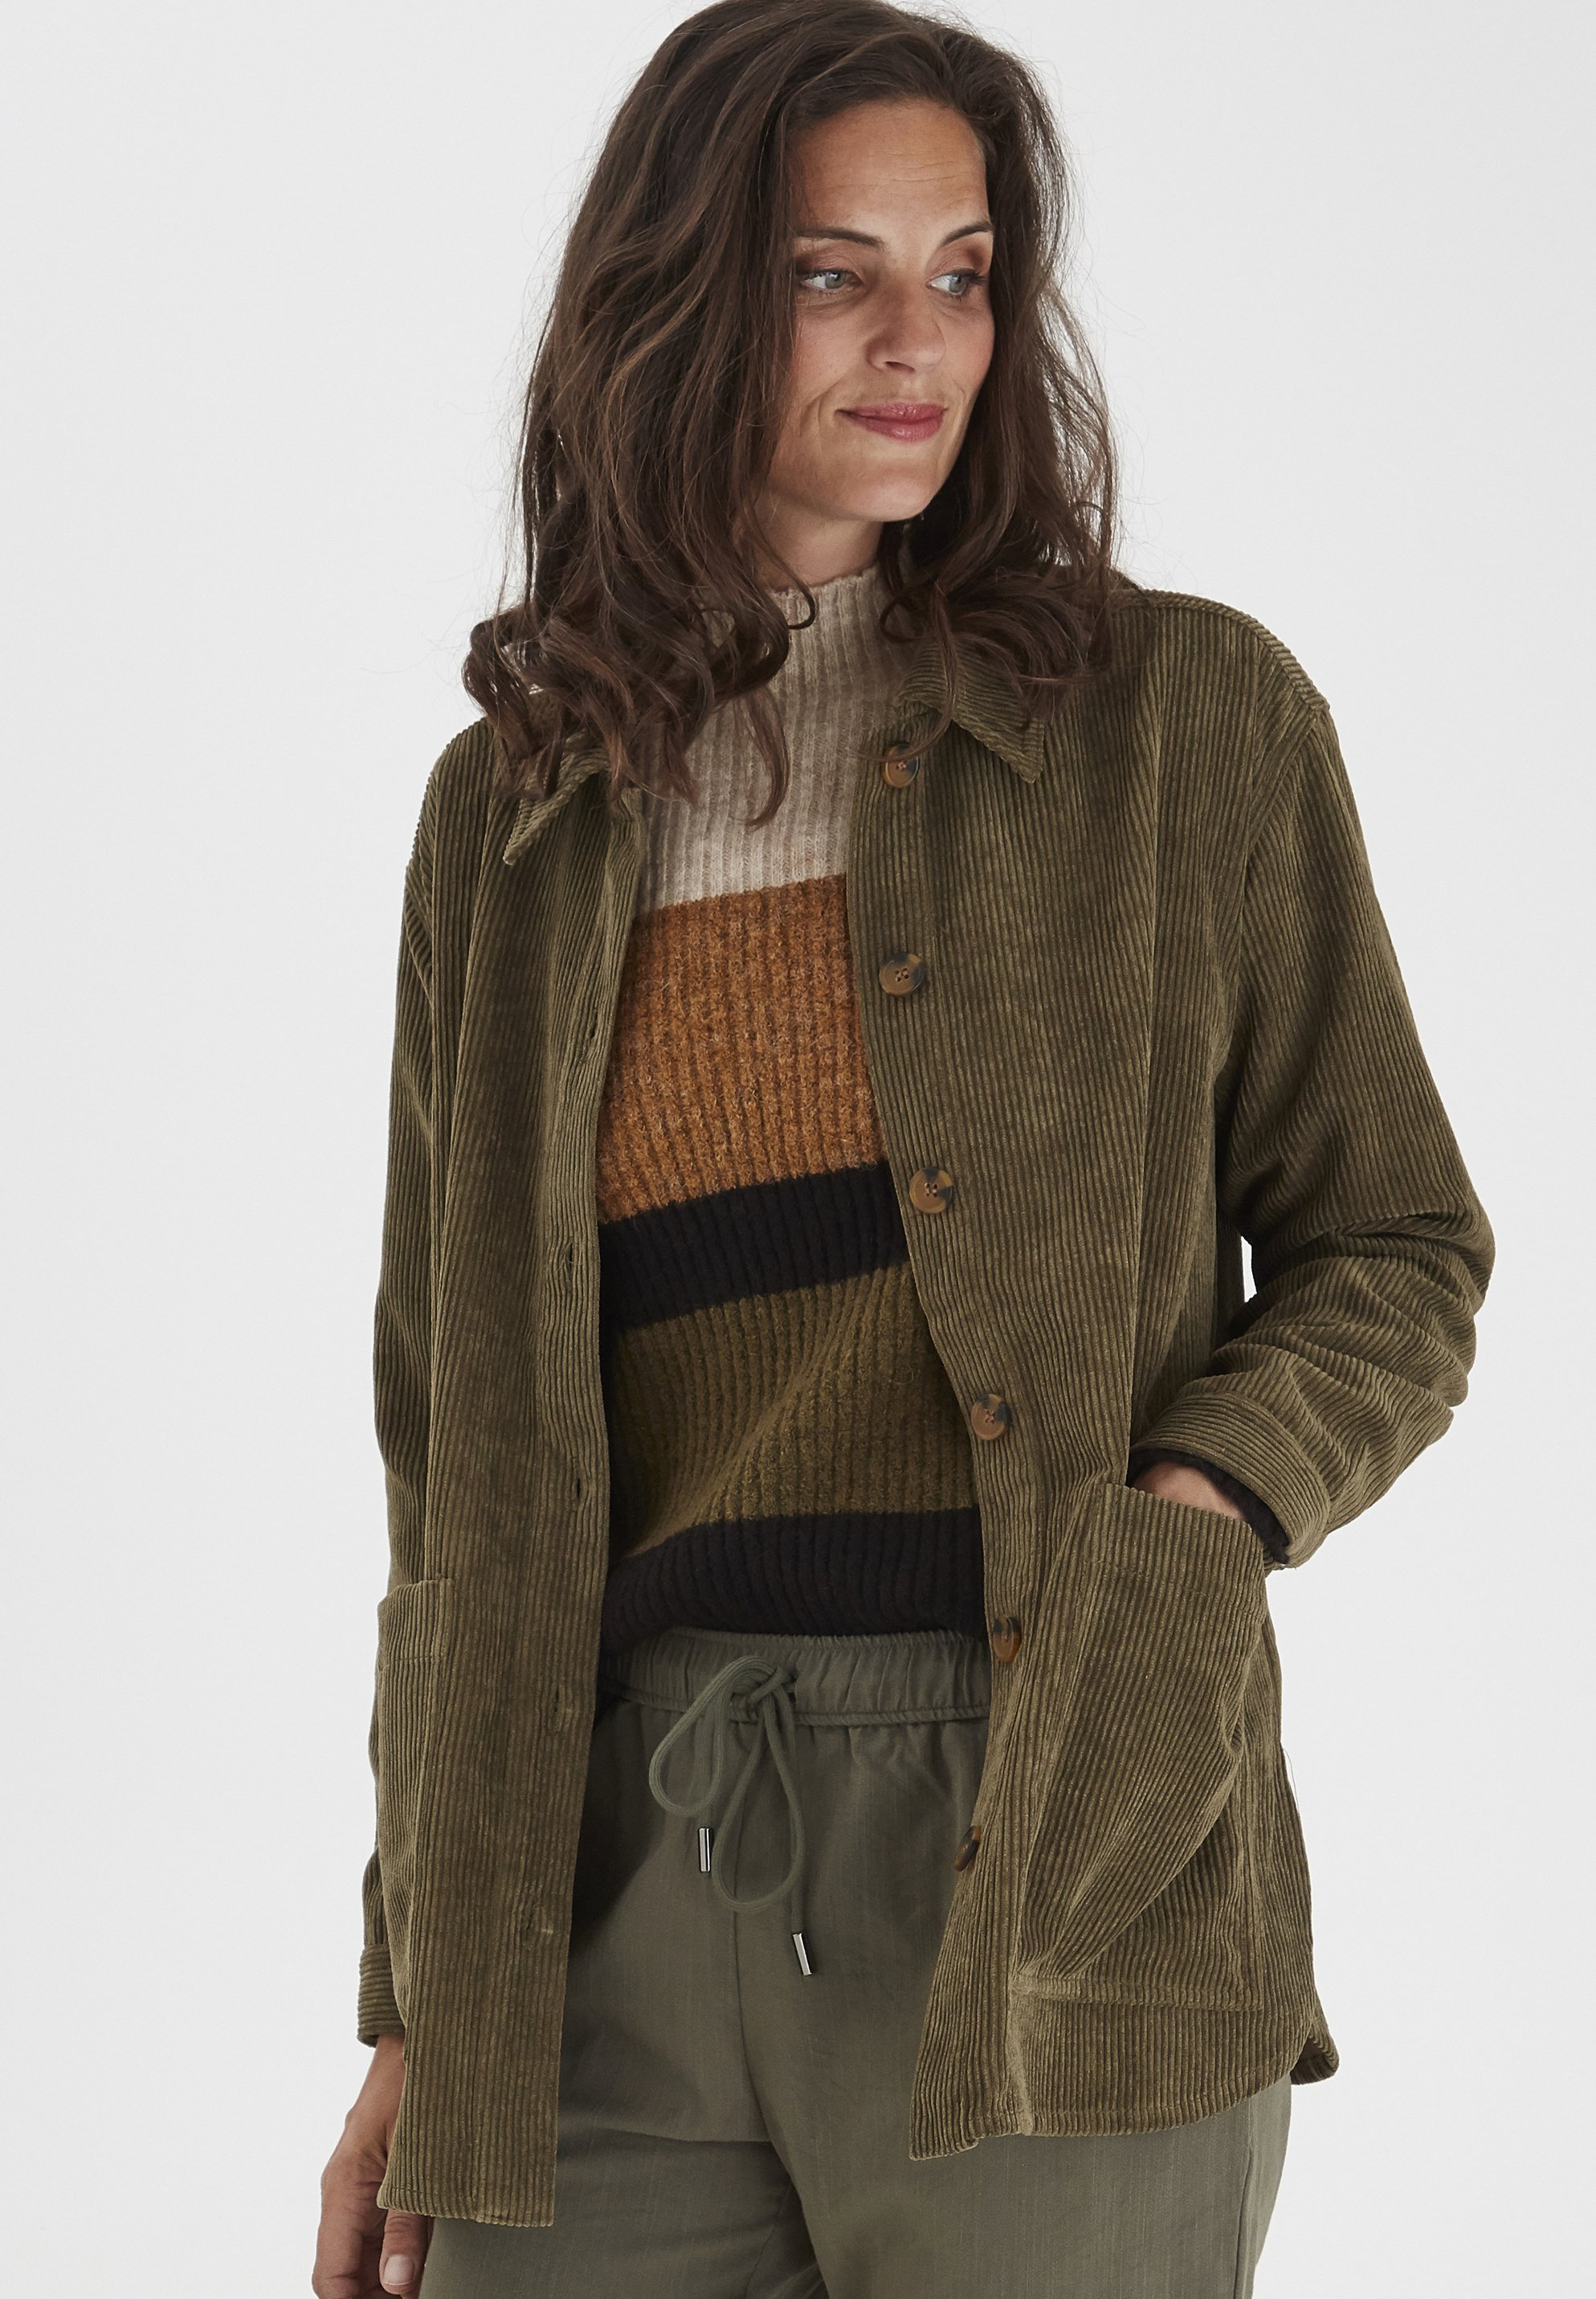 Low Price Sale Clean And Classic Women's Clothing Fransa FRMACORDUROY Summer jacket dark olive 6LuLdhrcj mM821dMFs